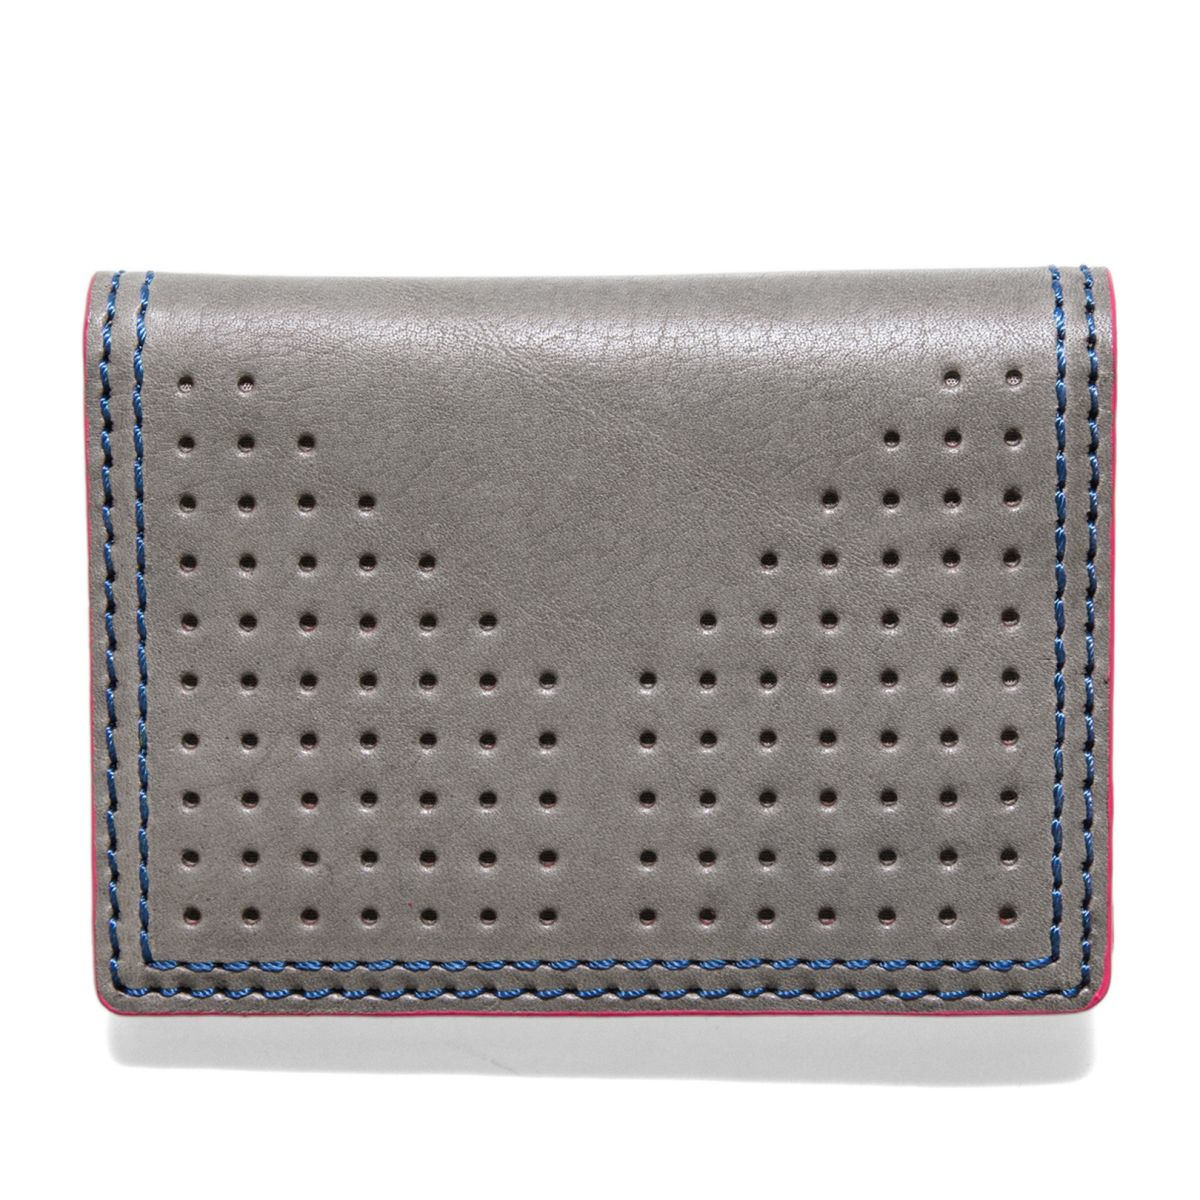 J.FOLD AIRWAVE Folding Carrier Leather Wallet - Grey